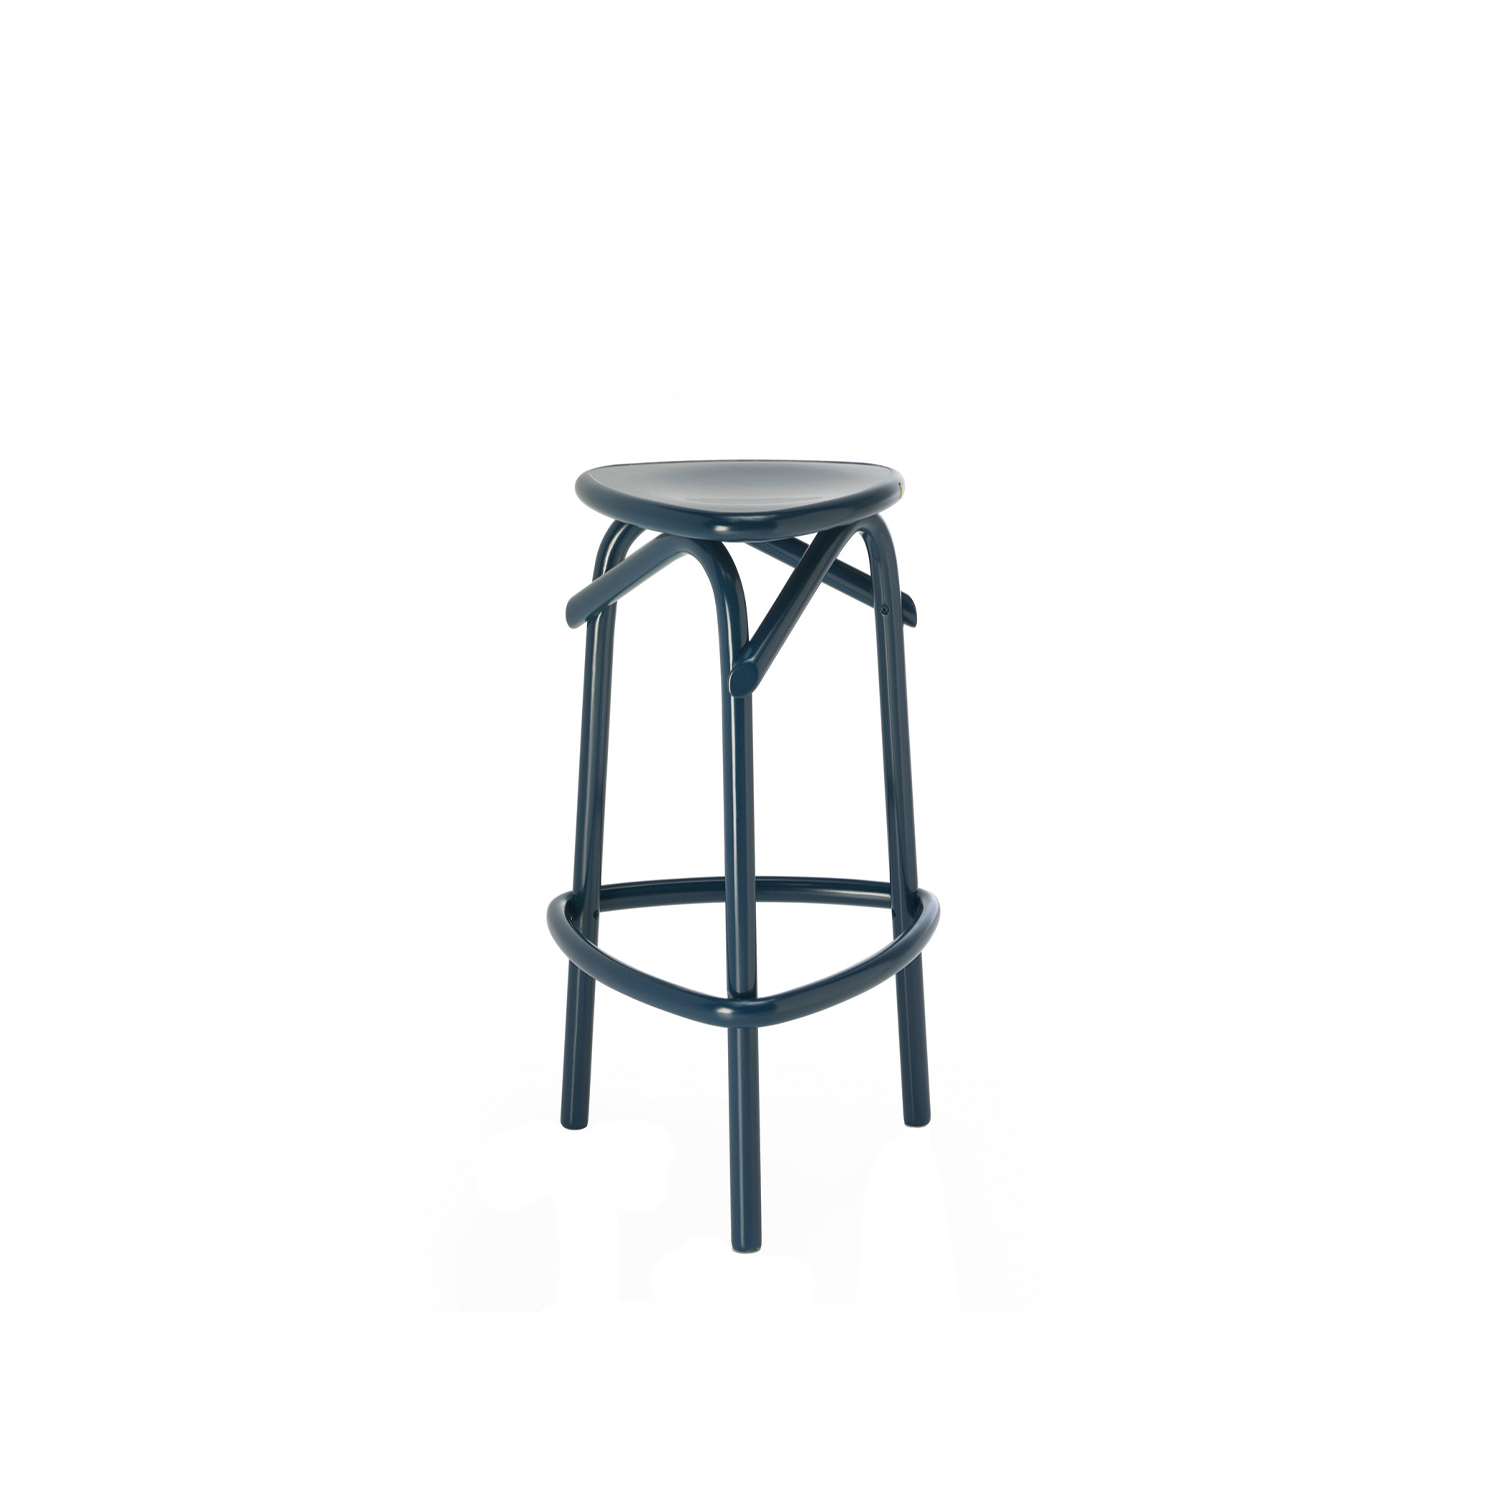 Trio Stool - Its structure is crafted of beechwood bent using steam-based techniques. The standout element of this piece is its base, comprising three legs that bend at the top to support the seat in plywood. The rich blue shade of this piece adds an elegant pop of color that will be eye-catching in a modern or eclectic interior. | Matter of Stuff